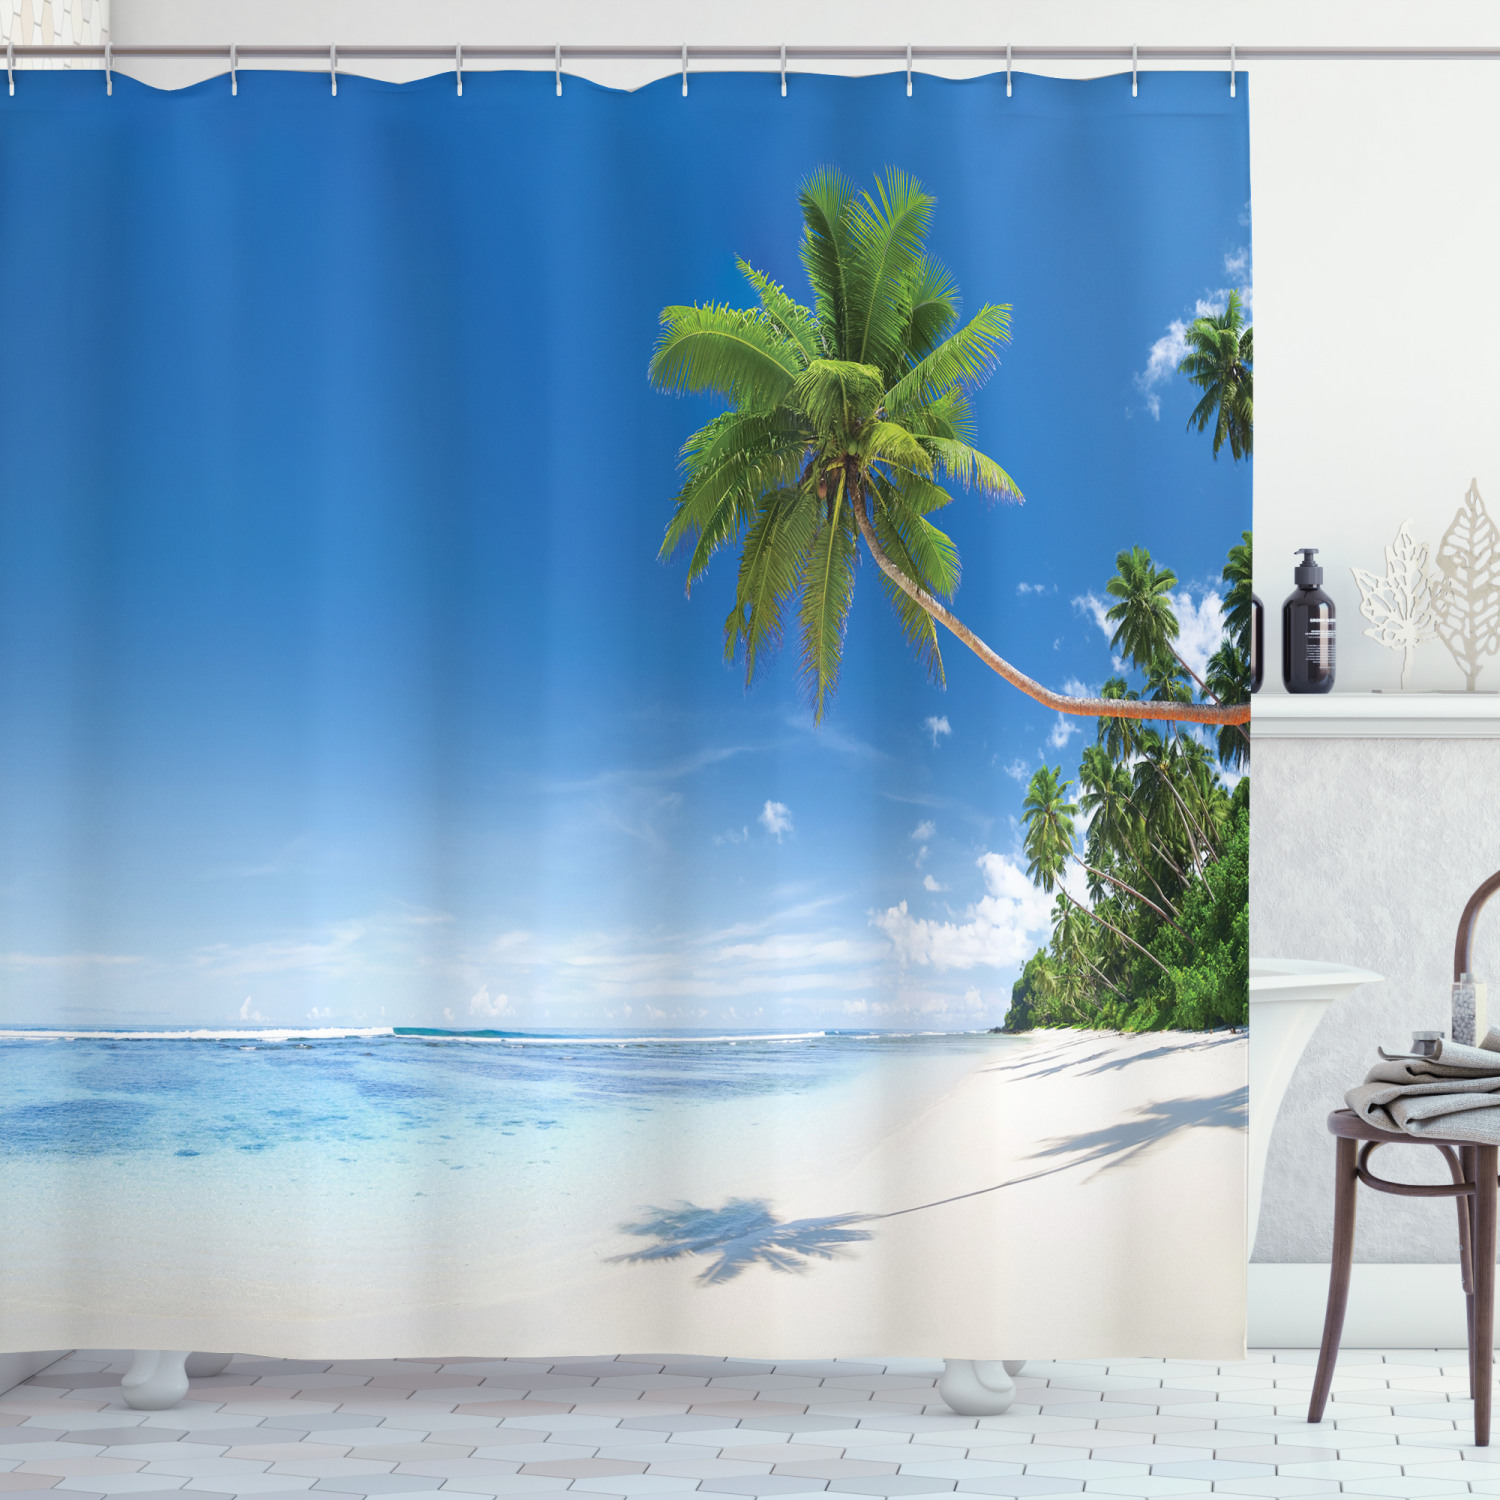 Details about  /Tropical Shower Curtain Ocean Summer Palms Print for Bathroom